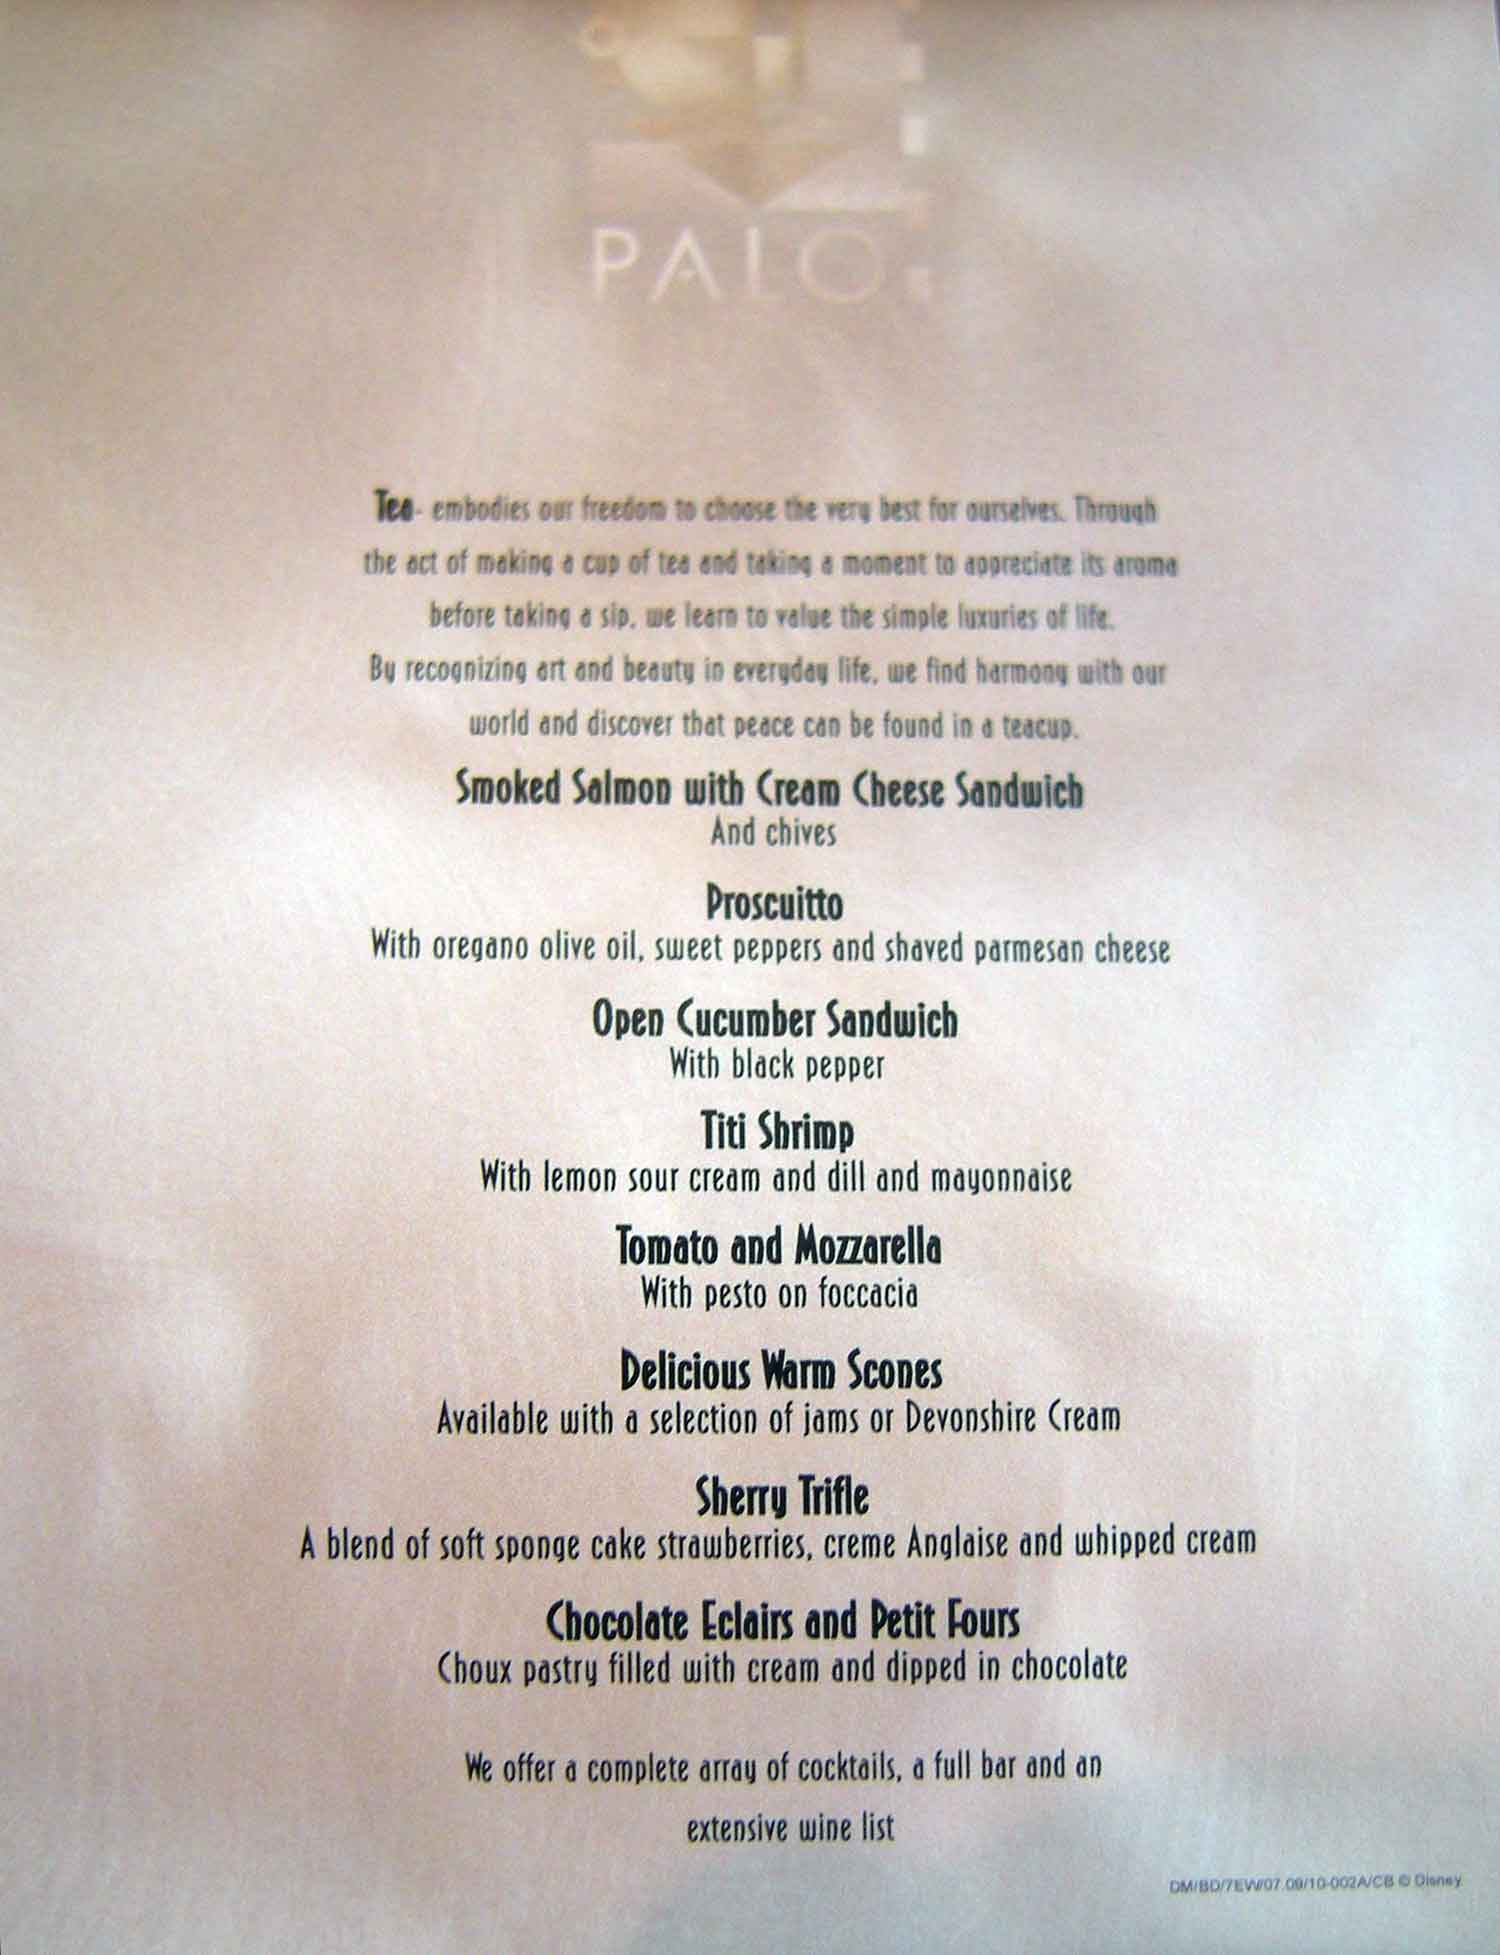 Disney Dream - Palo High Tea Menu 1/2